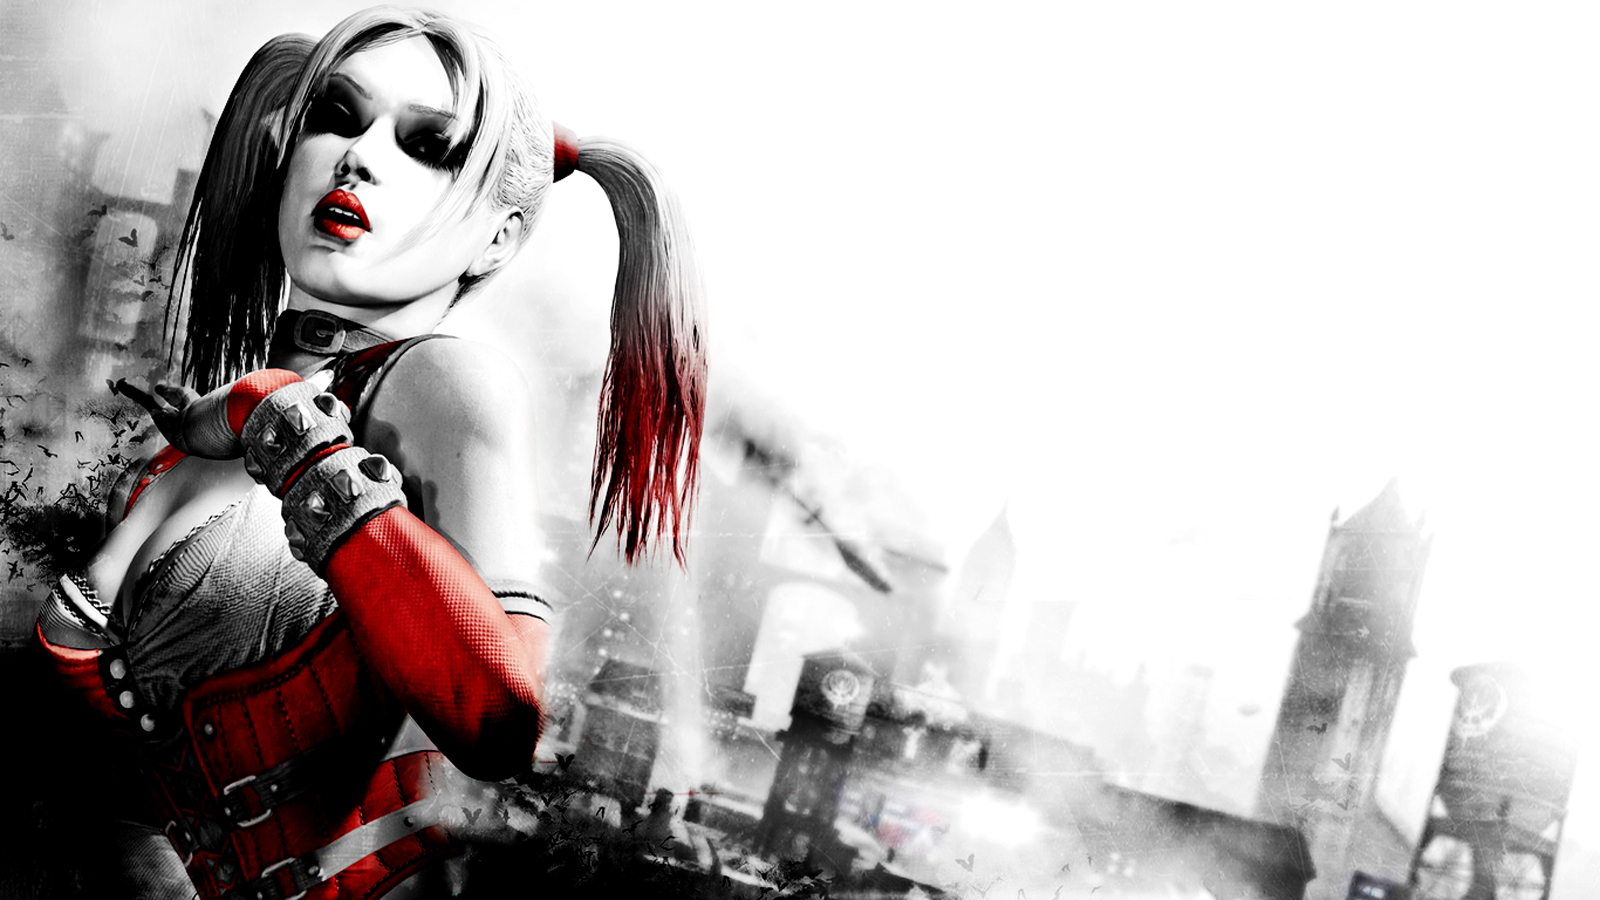 Wallpaper Hd Harley Quinn